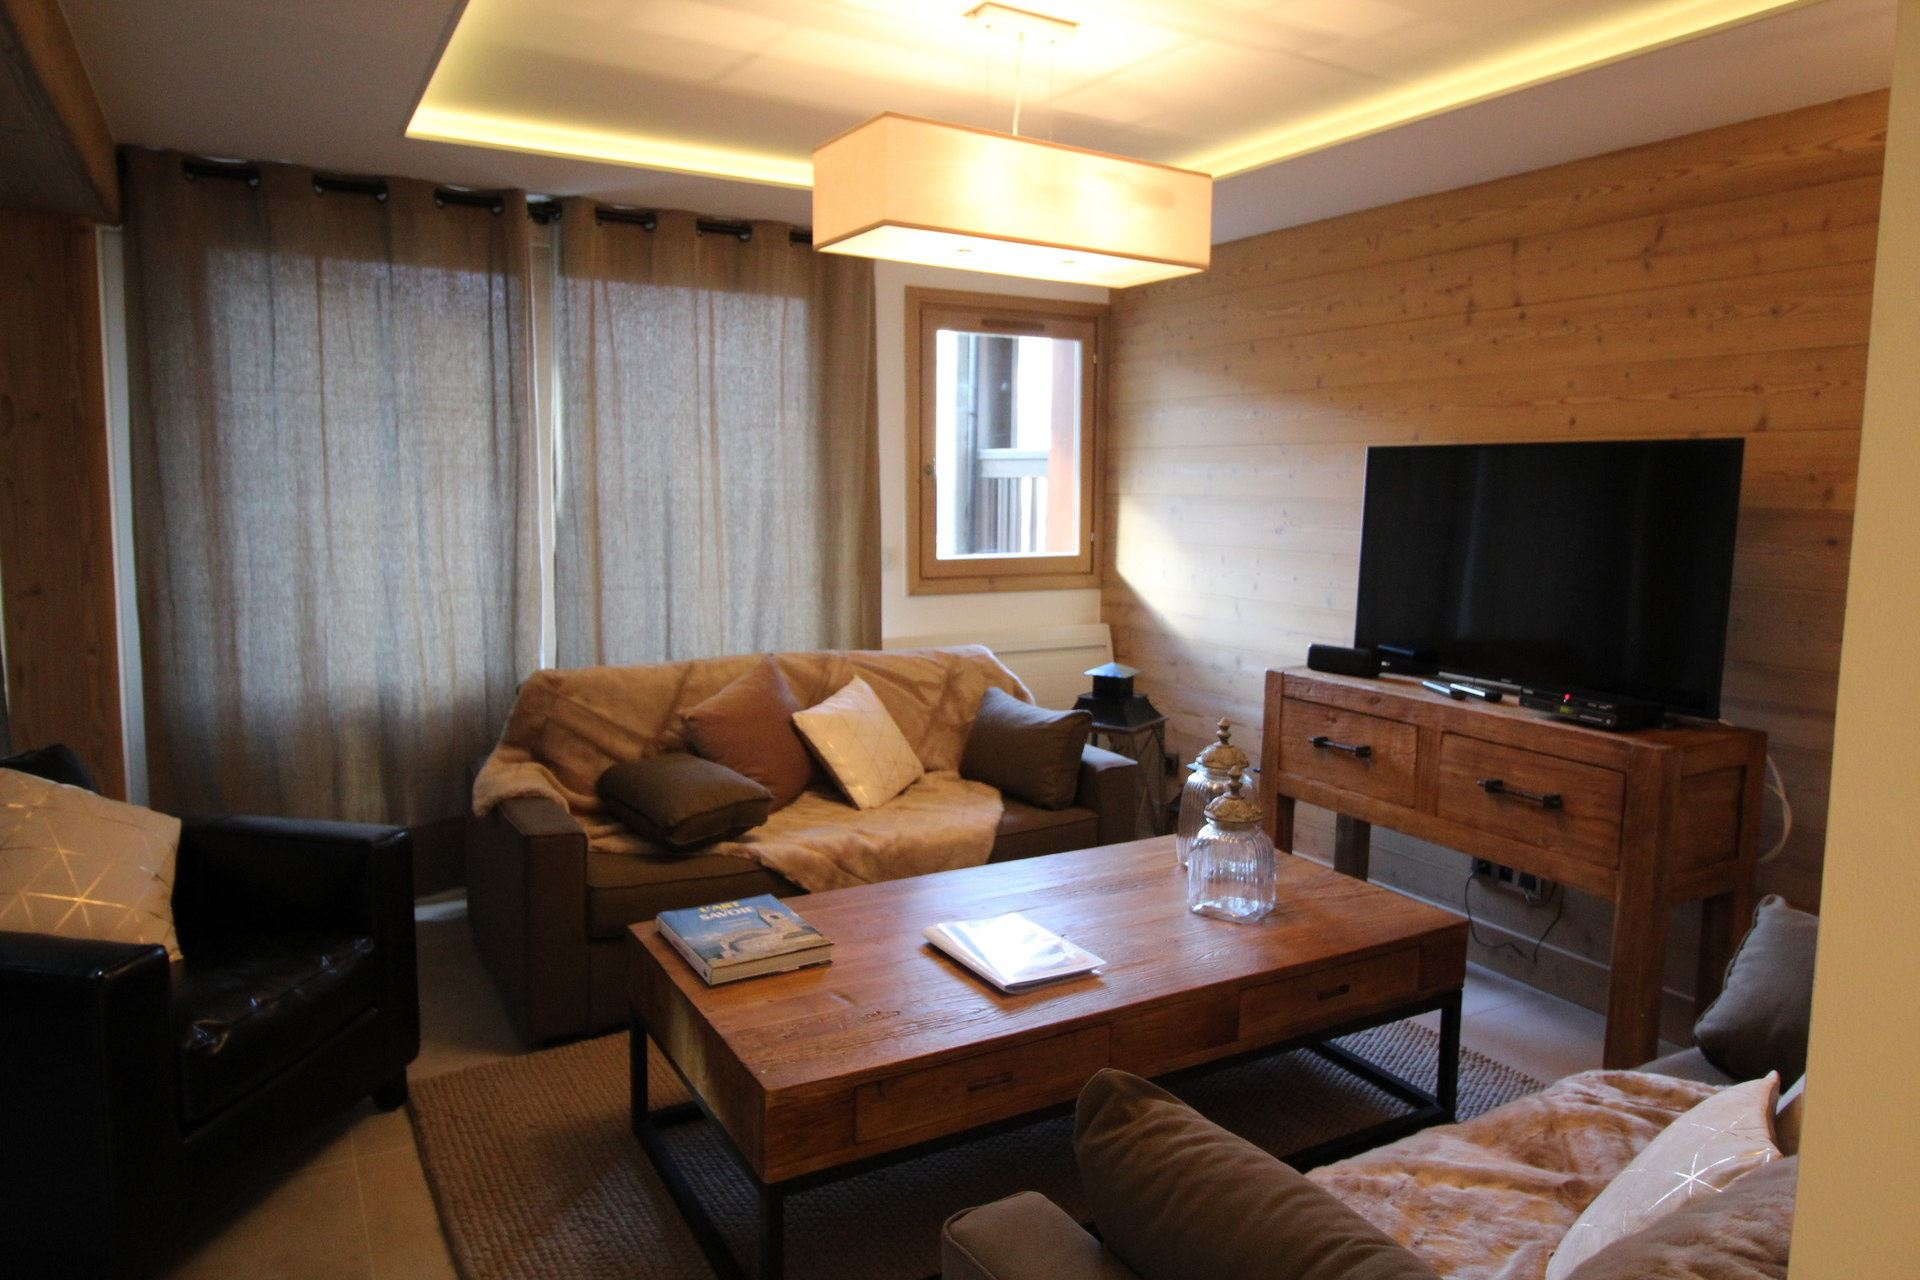 5 Rooms Duplex 8 Pers ski-in-ski-out / Les Trolles n°1